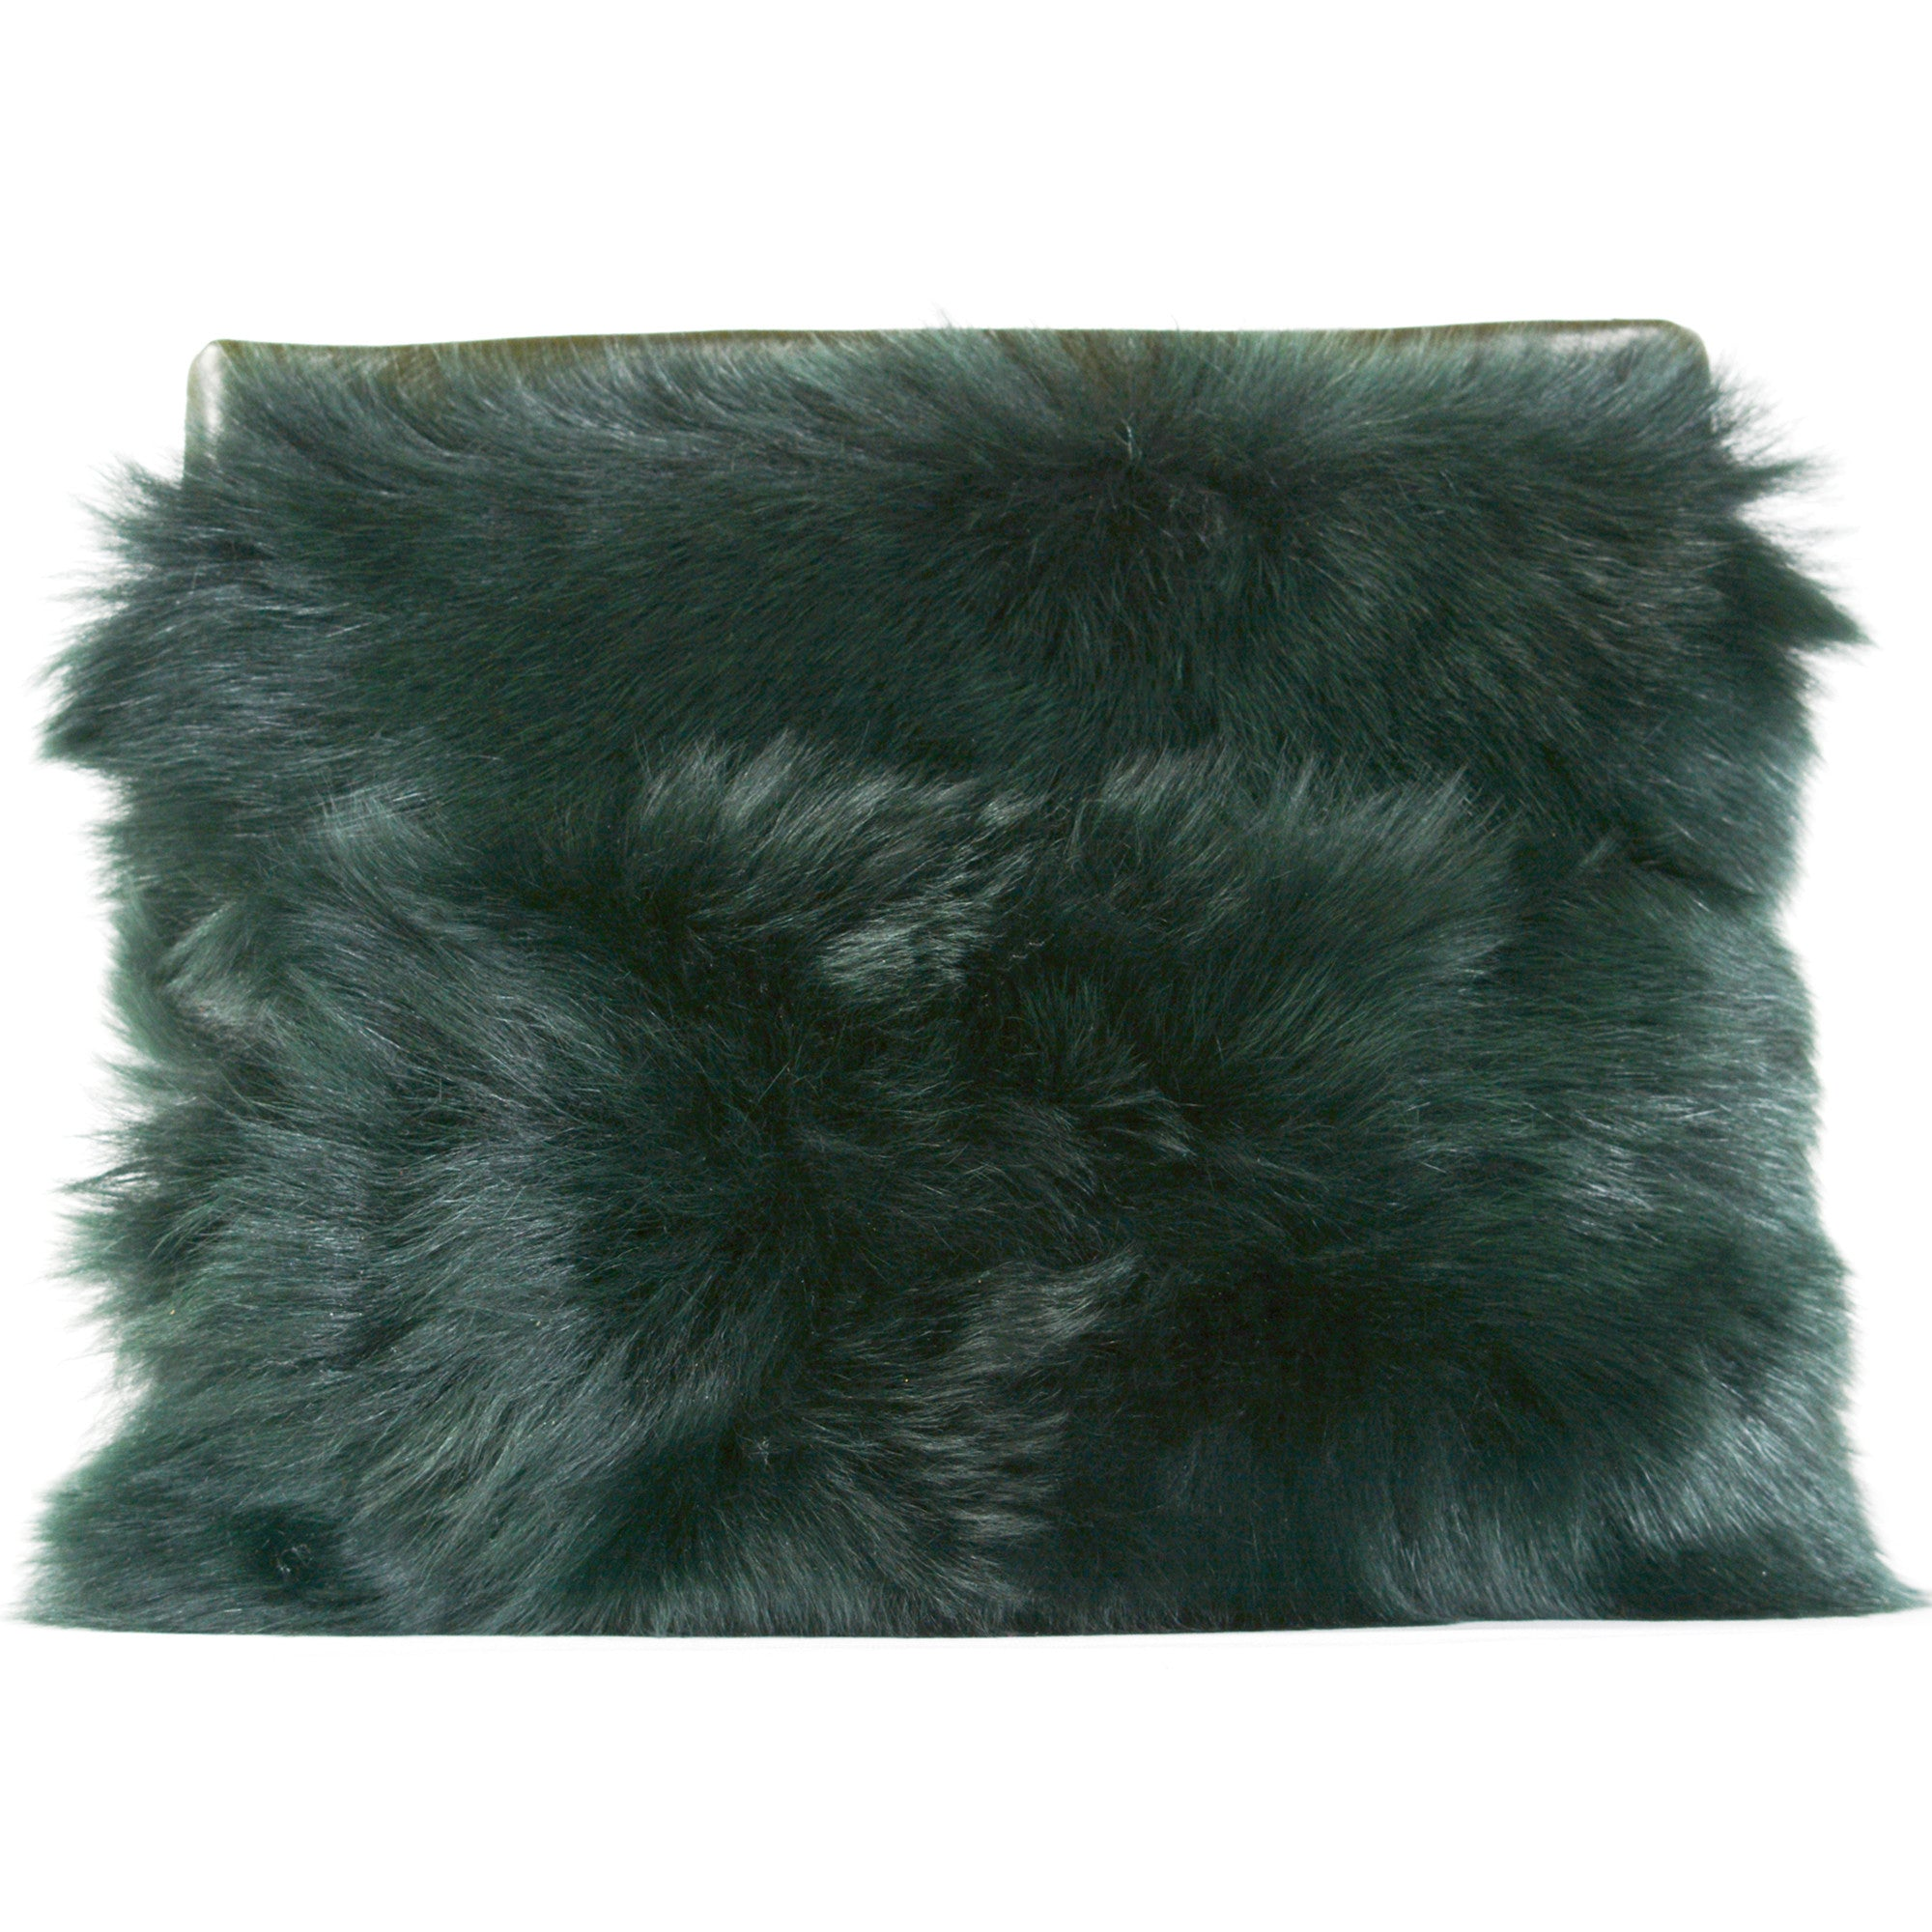 cover chairish product faux pillow elm fur west